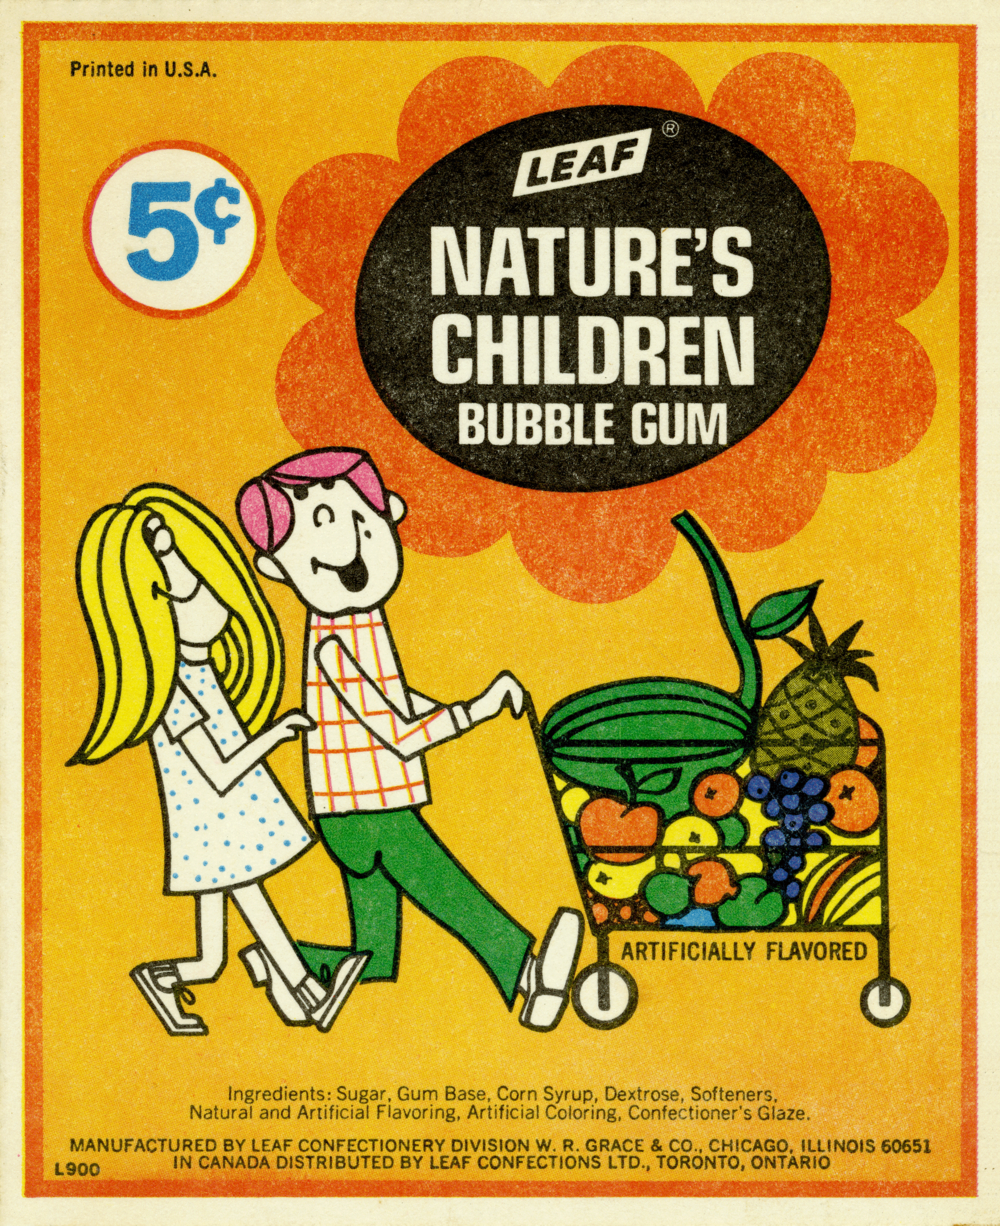 natures-children_24088179388_o.png